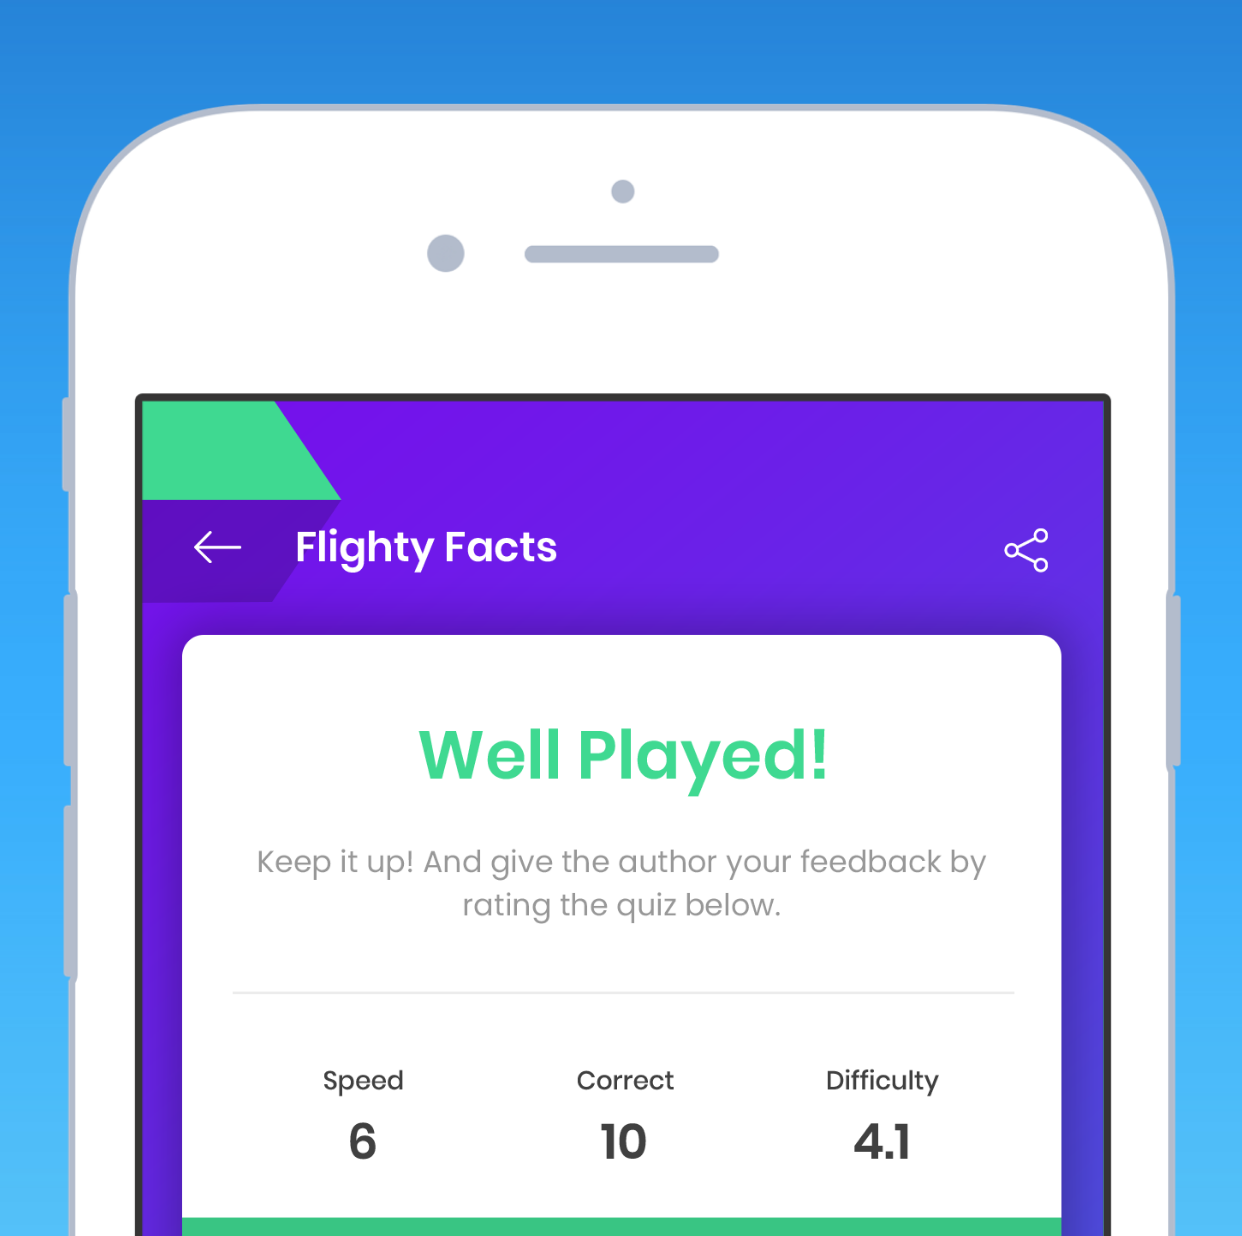 Endless Trivia - More than 100,000 trivia quizzes ranging in difficulty from beginner to expert, and more than 250 game categories.